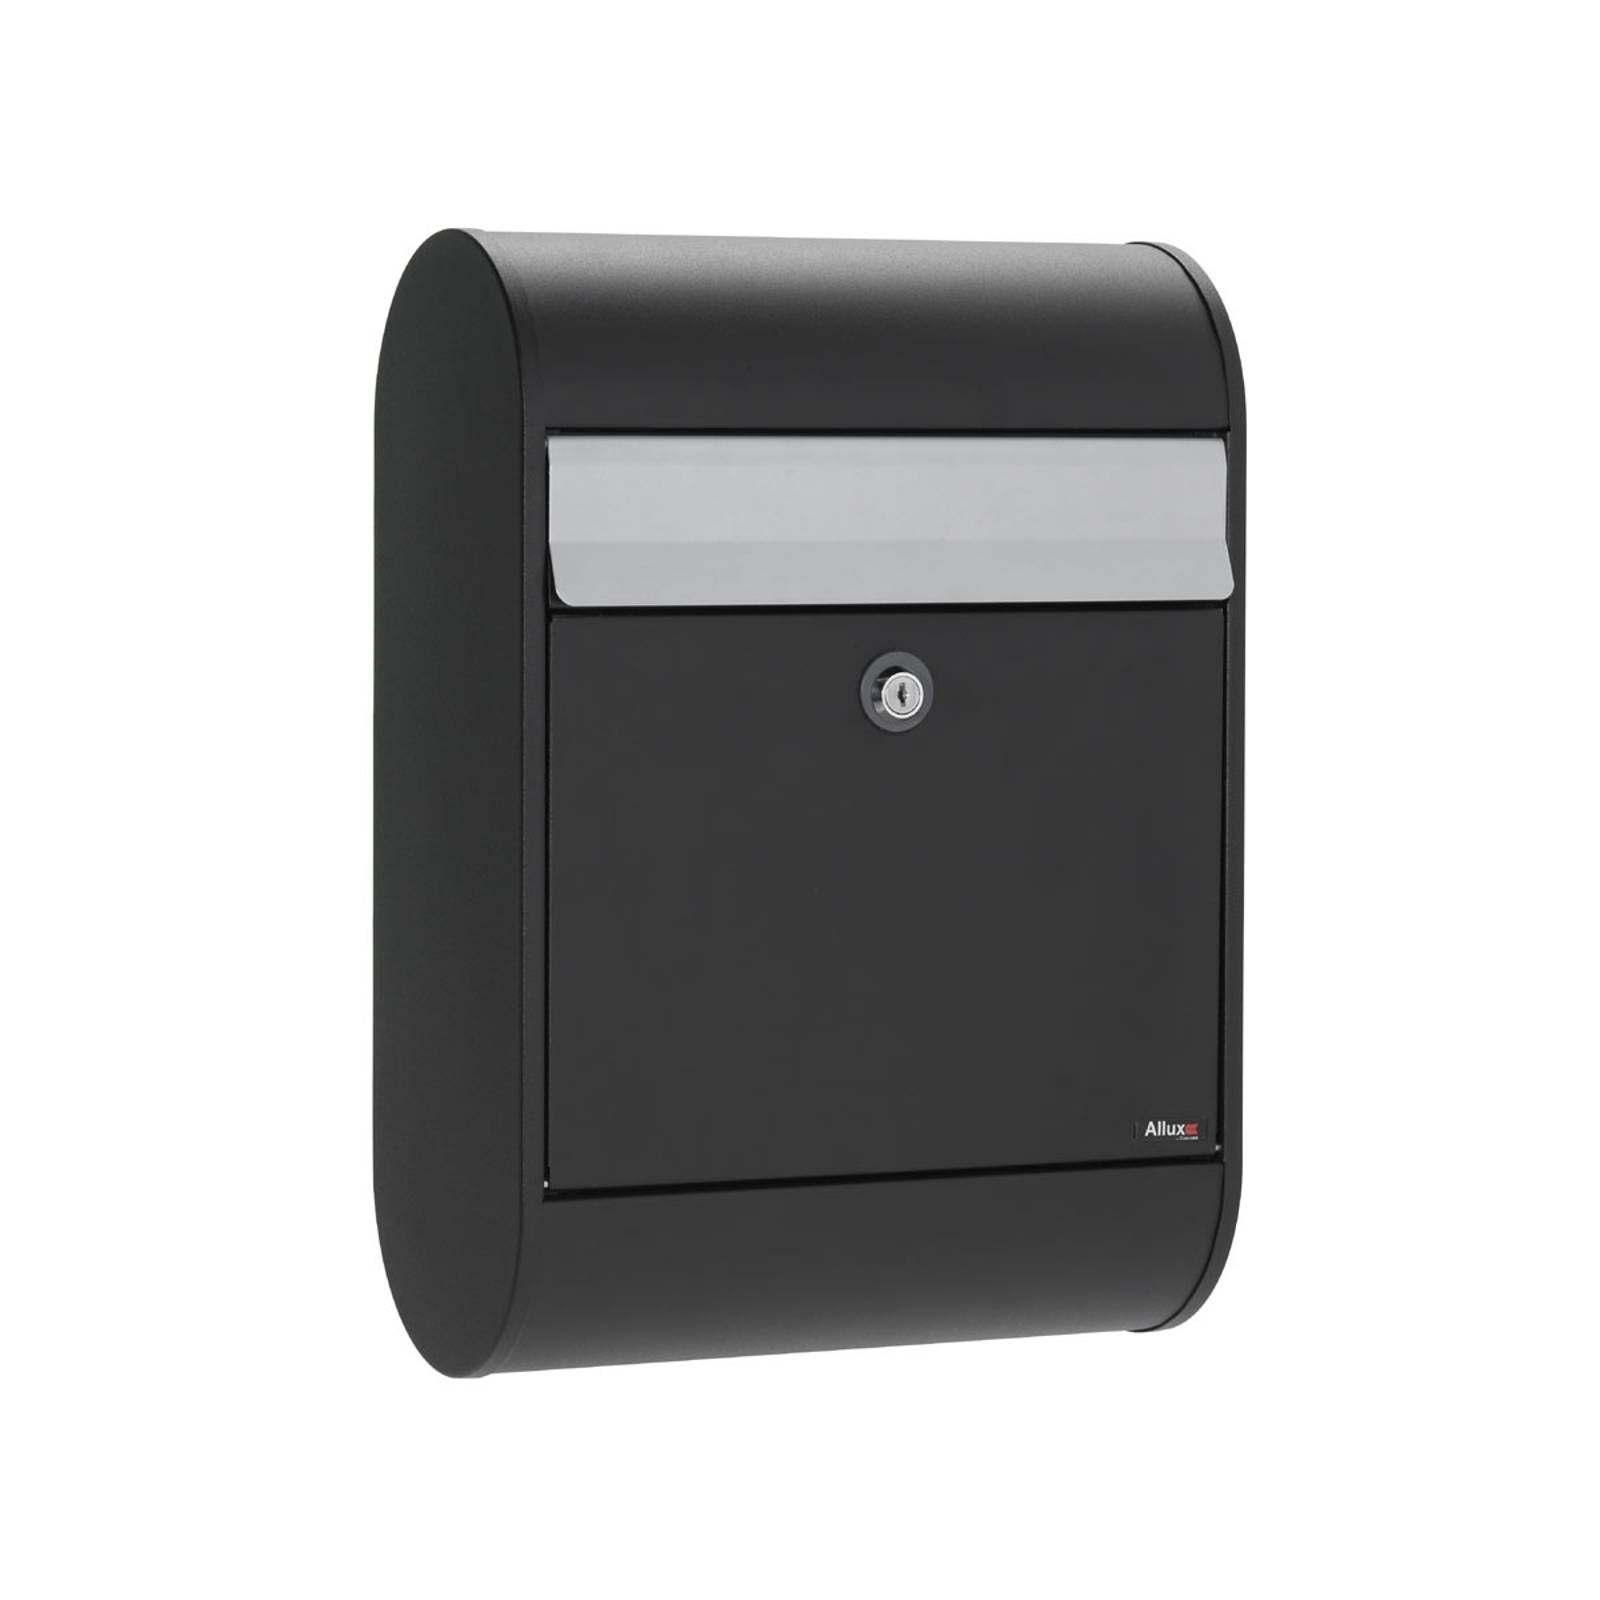 Lovely letterbox 5000, black from Juliana